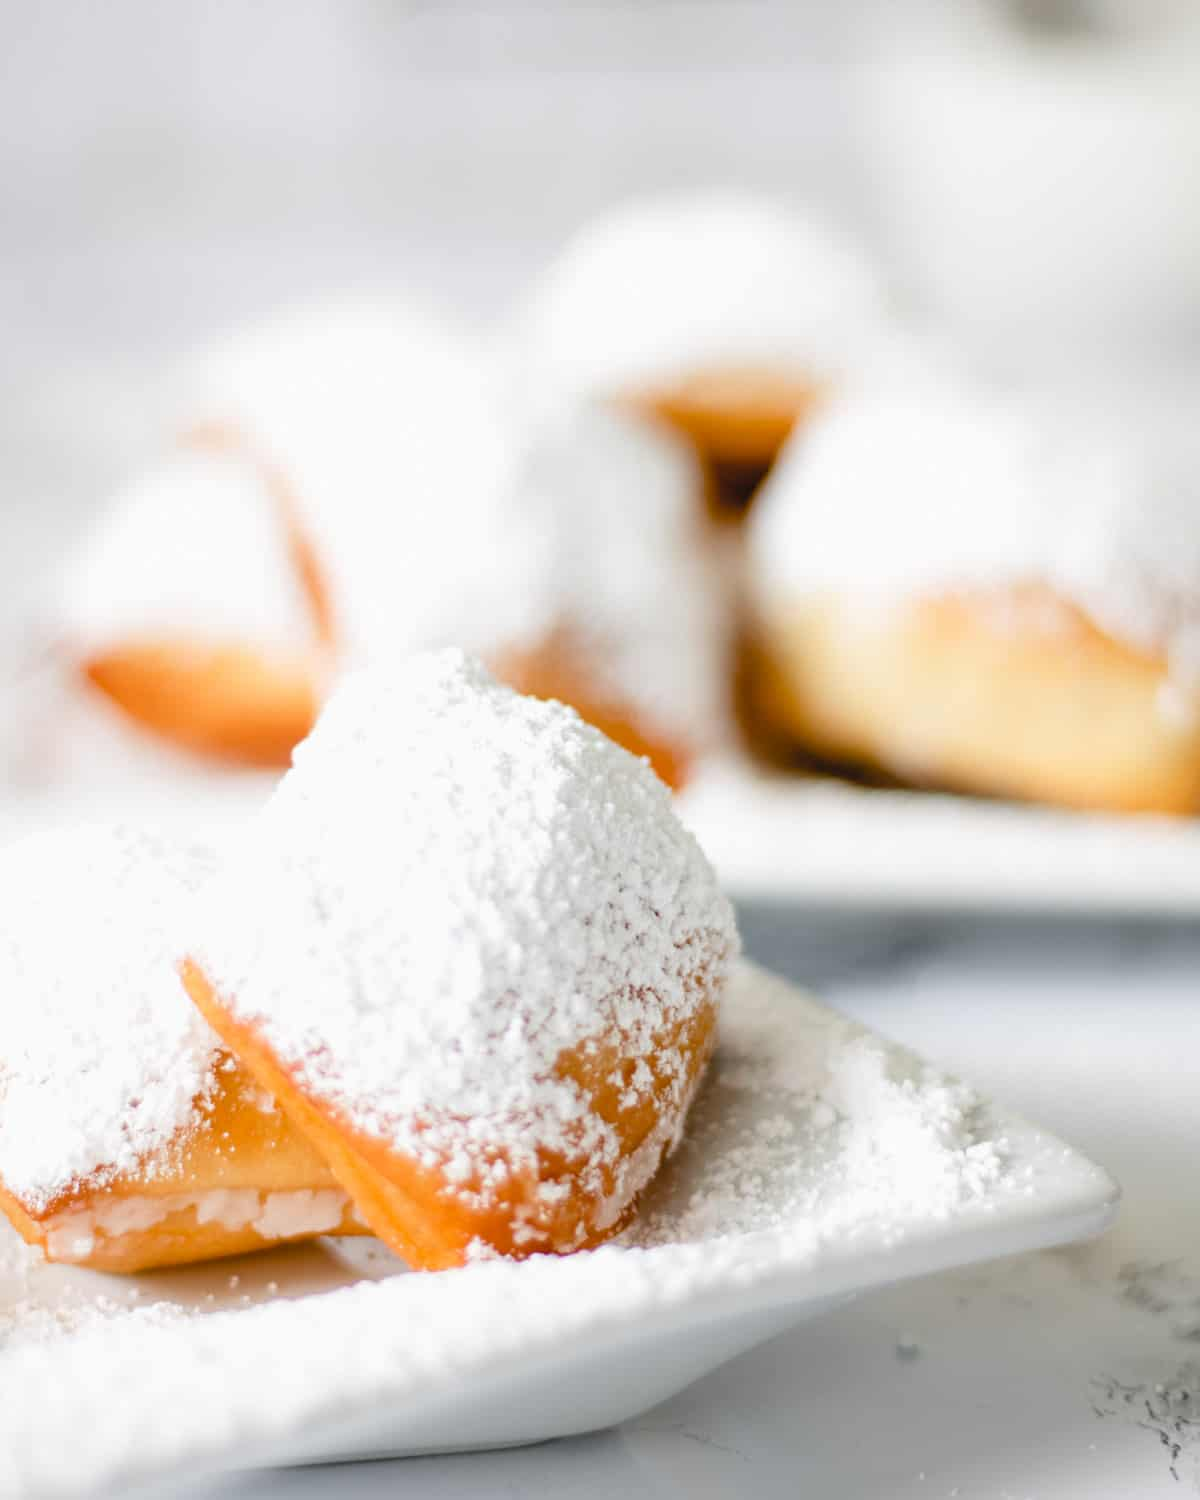 Two plates of beignets covered in powdered sugar.